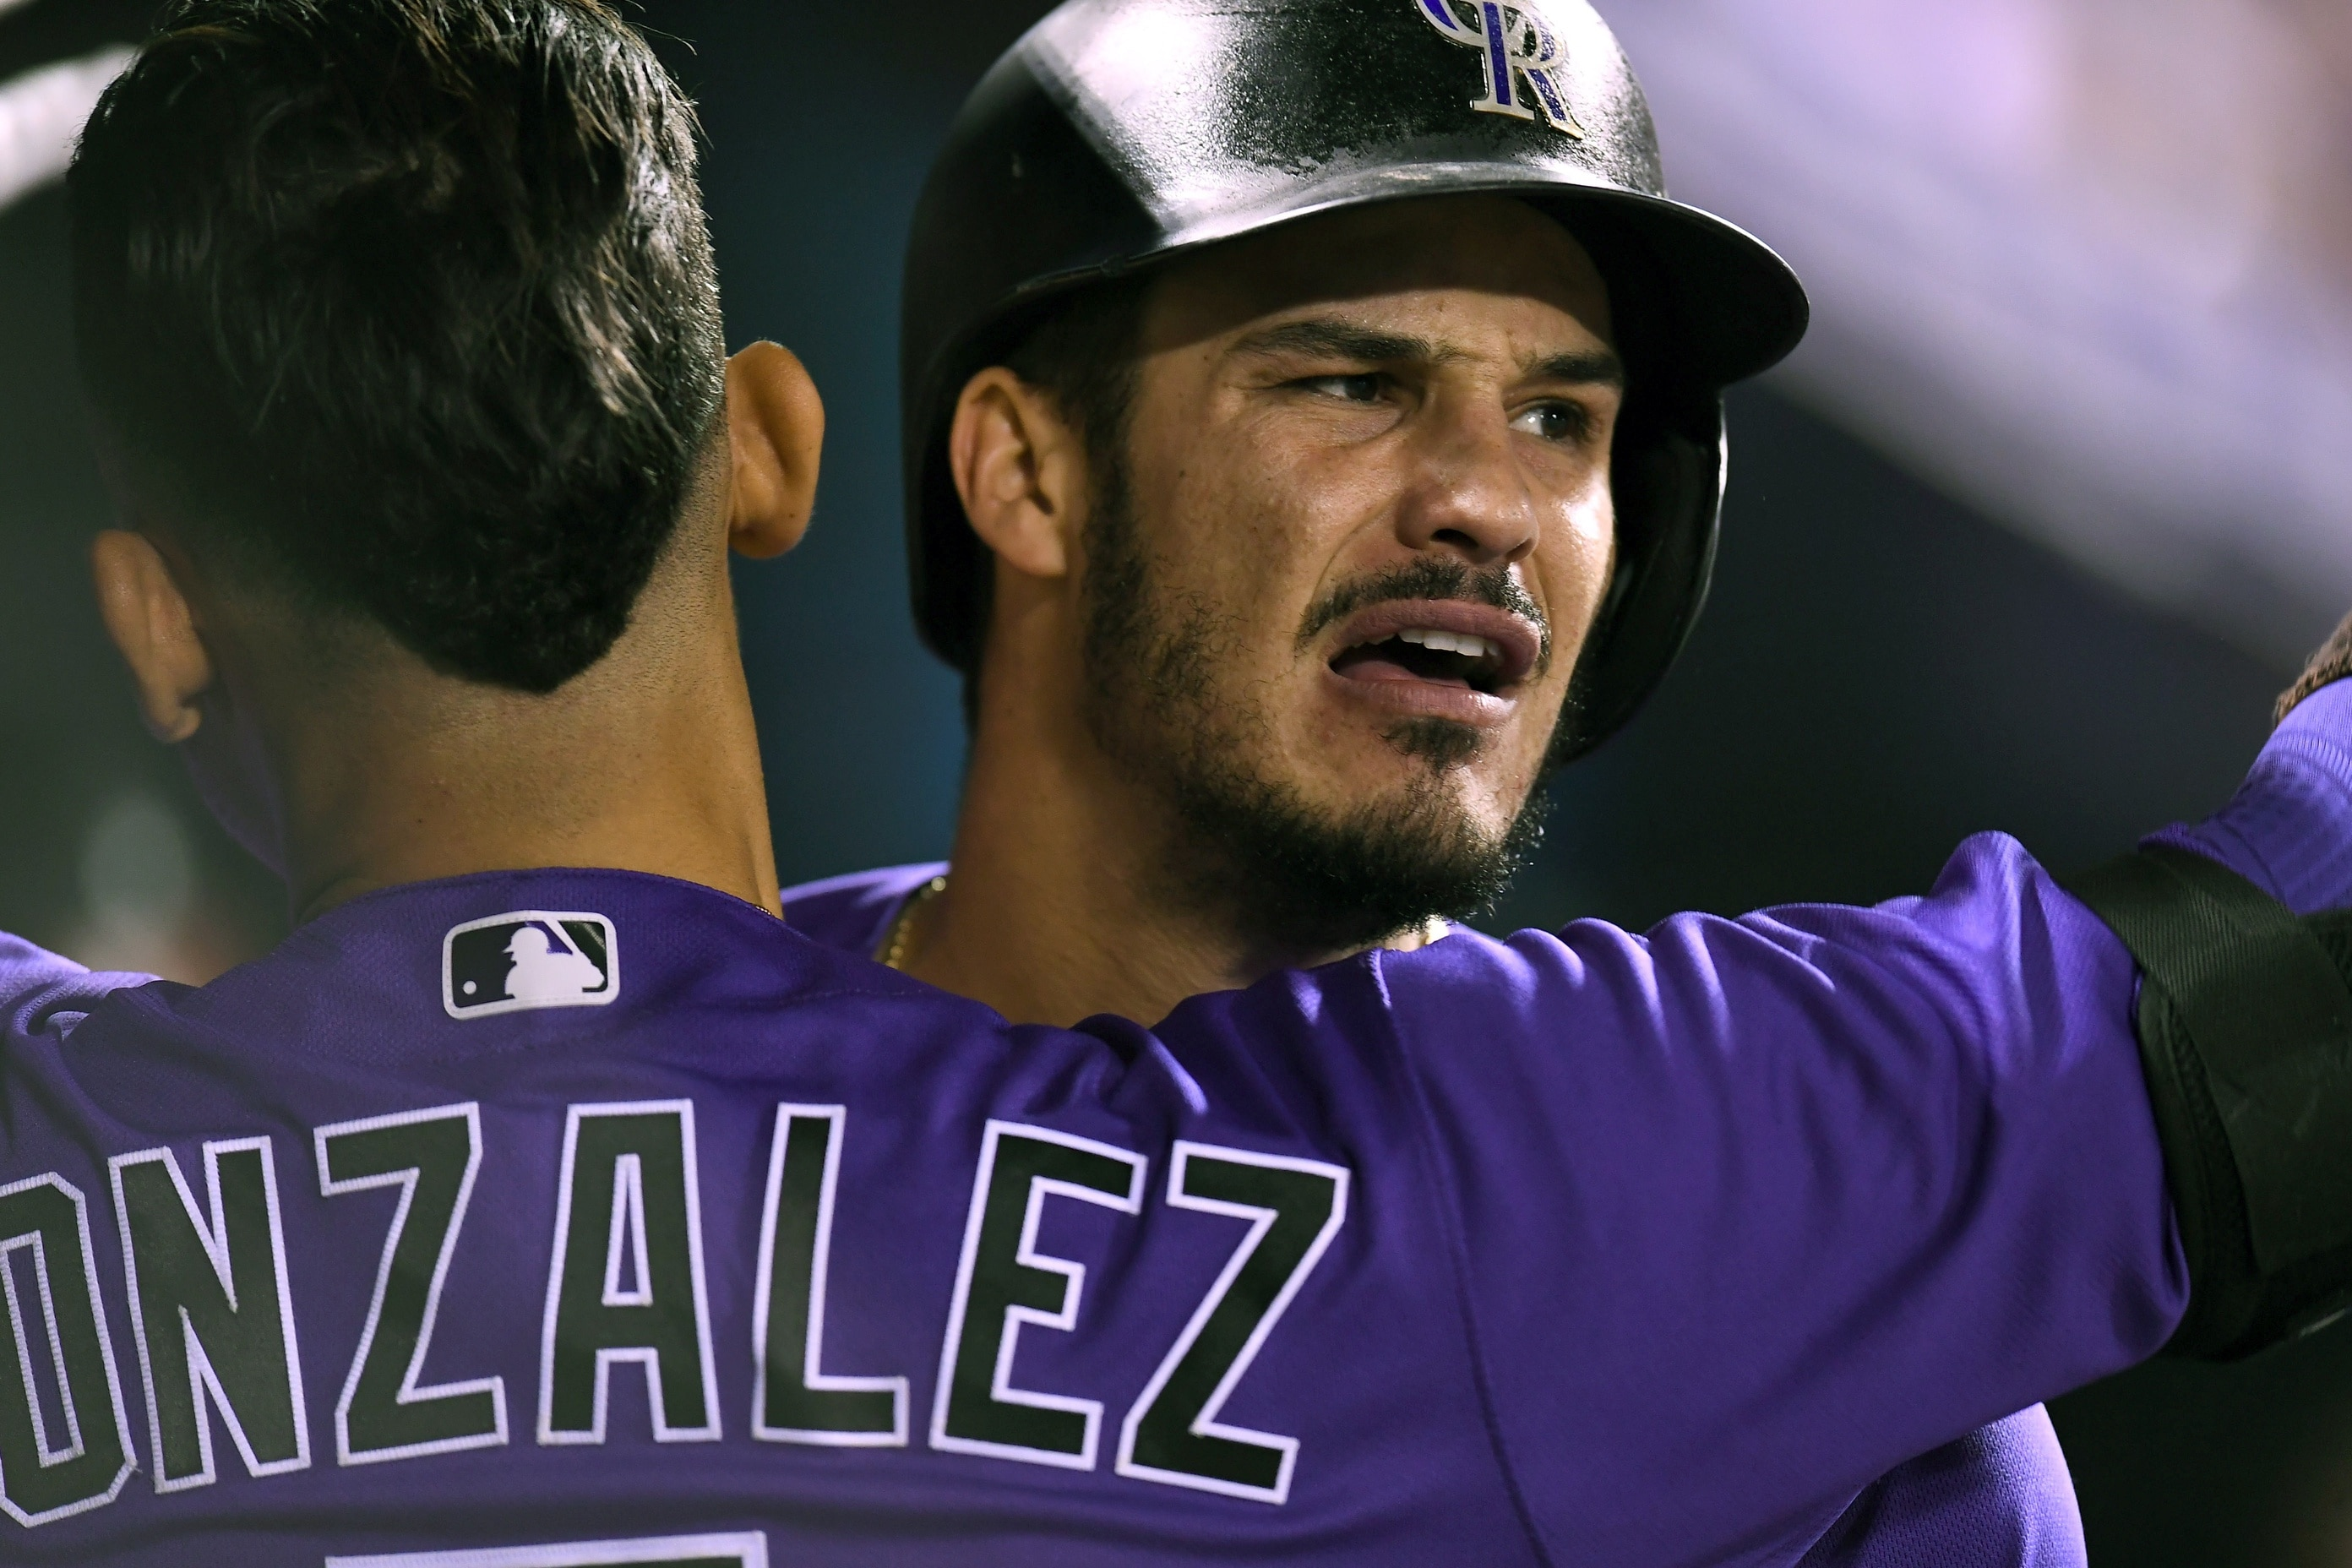 Nolan Arenado is obviously the Rockies' best player.